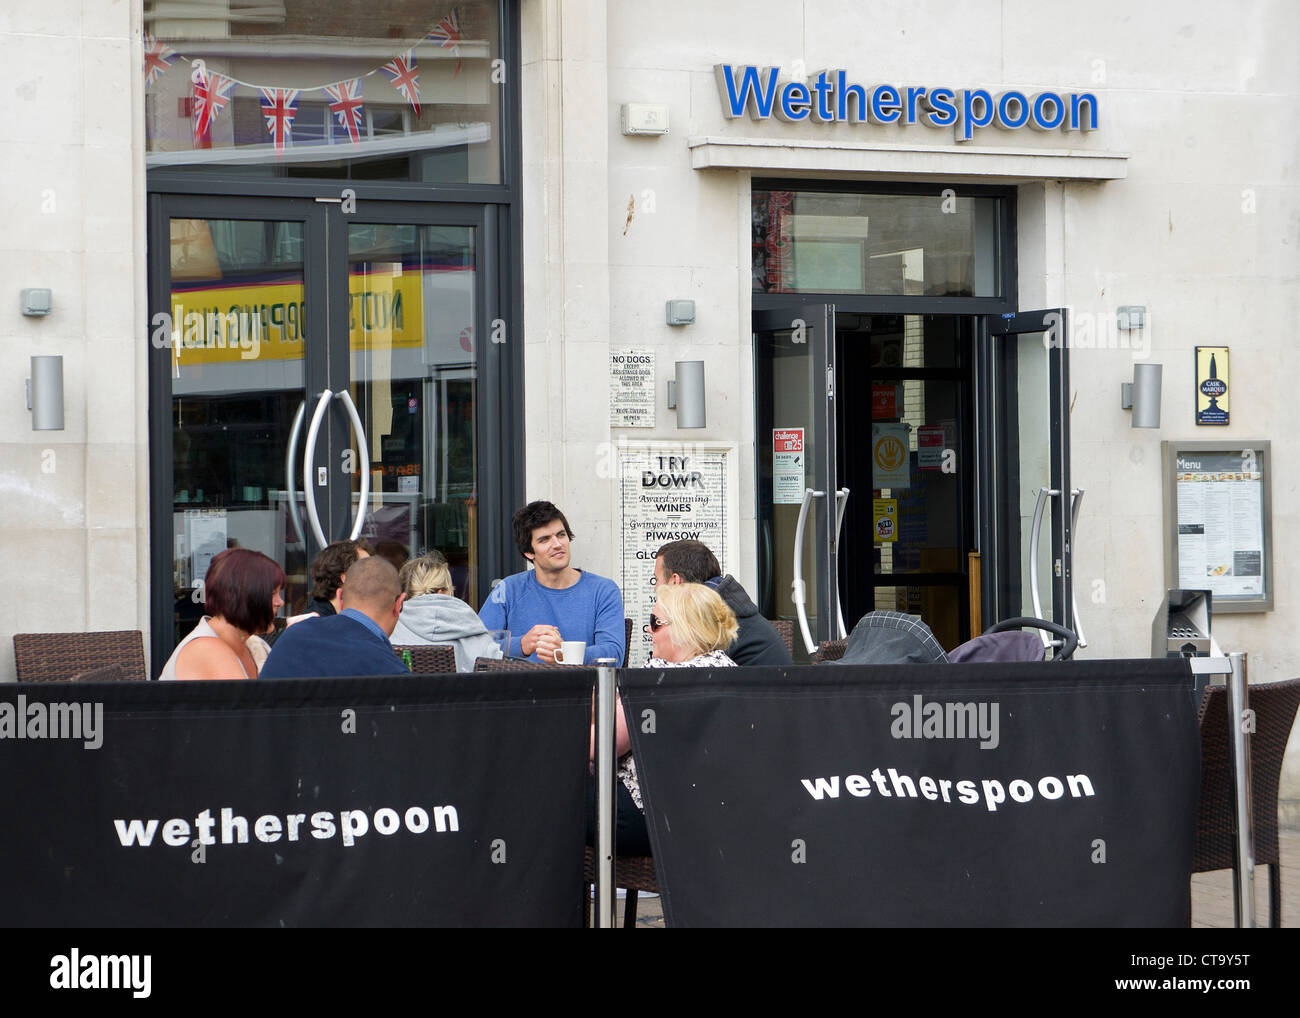 Customers seated outside a Wetherspoons pub in Truro, Cornwall, UK - Stock Image